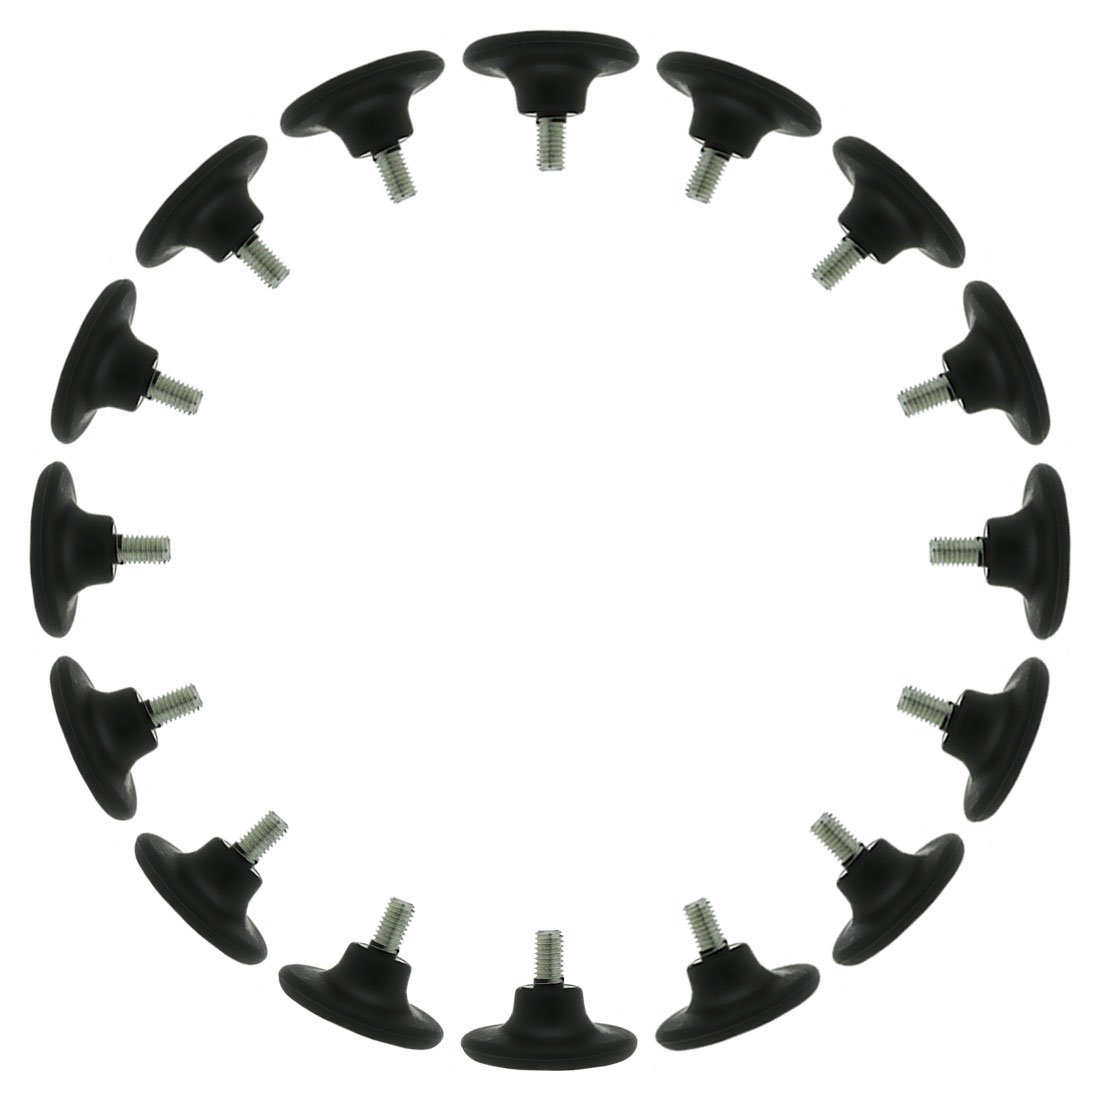 uxcell M8 x 15 x 45mm Screw on Furniture Glide Leveling Feet Floor Protector Adjustable Leveler for Chair Leg 16 Pack